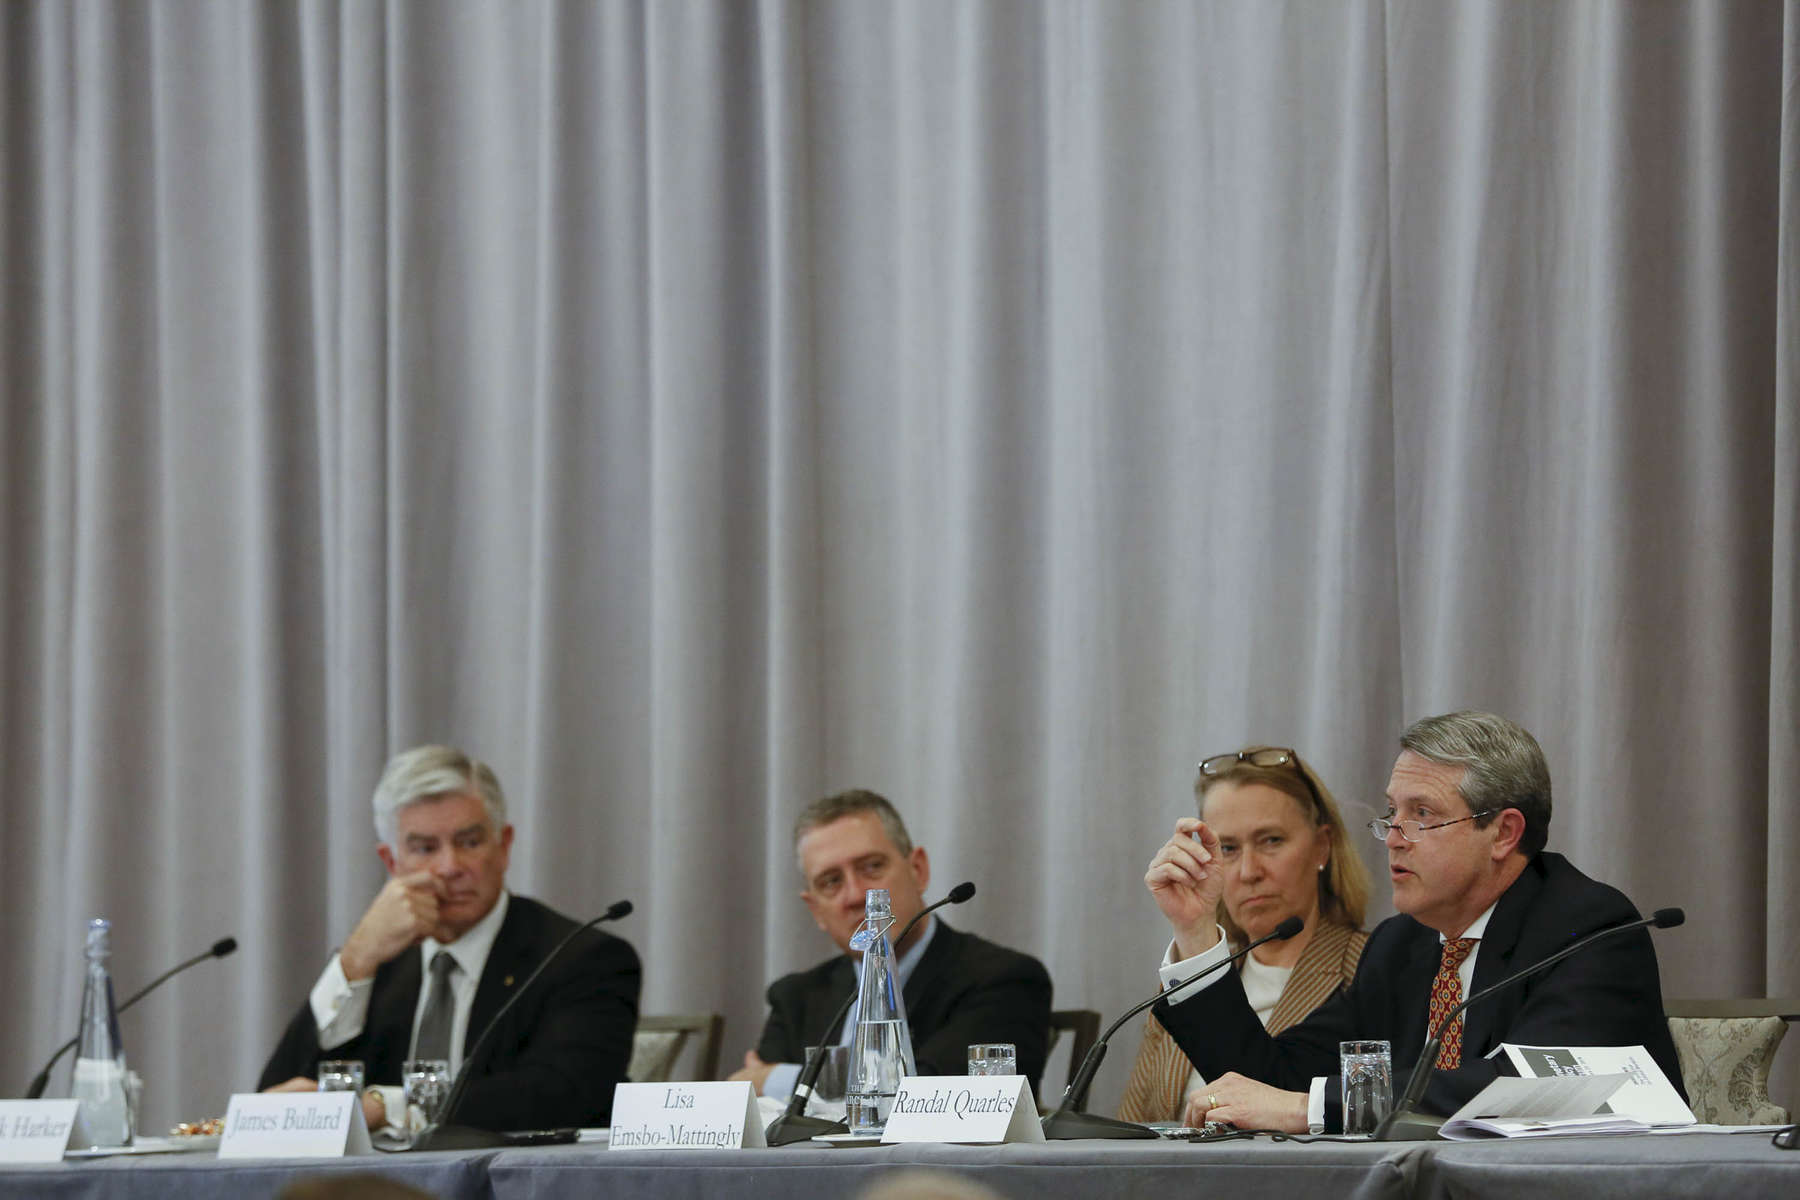 Left to Right: Patrick Harker, Federal Reserve Bank of Philadelphia, James Bullard, Federal Reserve Bank of St. Louis, Lisa Emsbo-Mattingly, Fidelity, and Randal Quarles, Board of Governors of the Federal Reserve